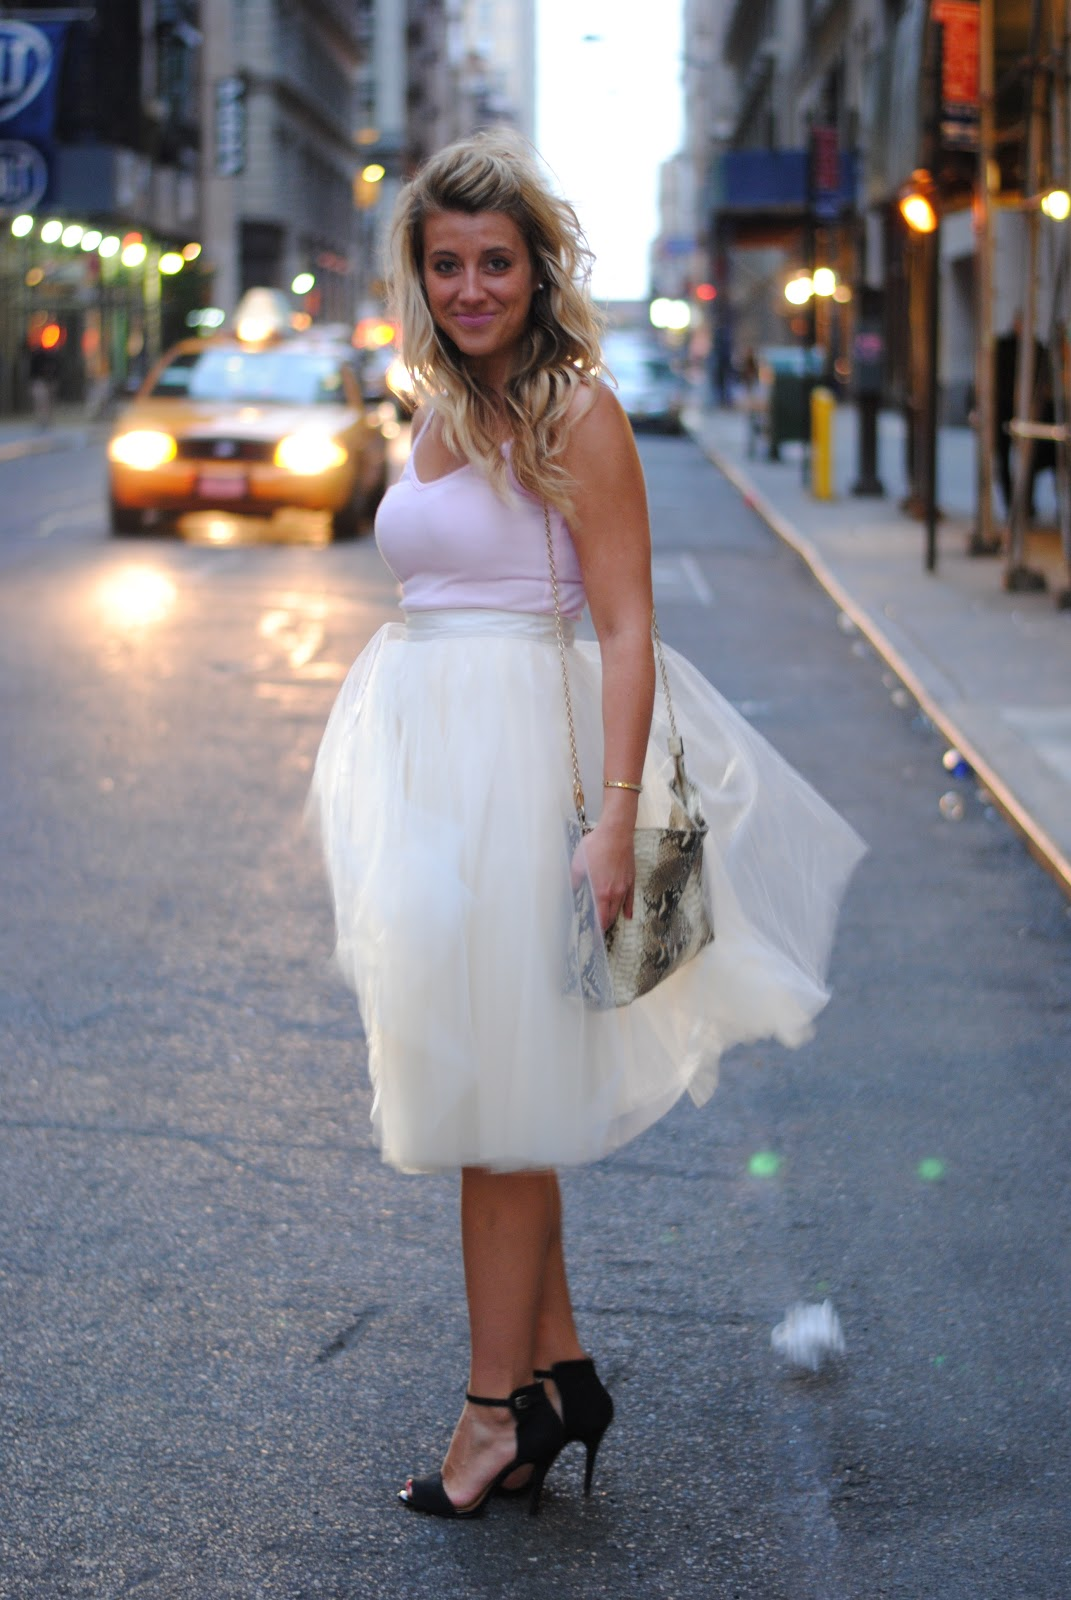 Being Carrie Bradshaw  sc 1 st  Shanelé & Shanelé: Being Carrie Bradshaw